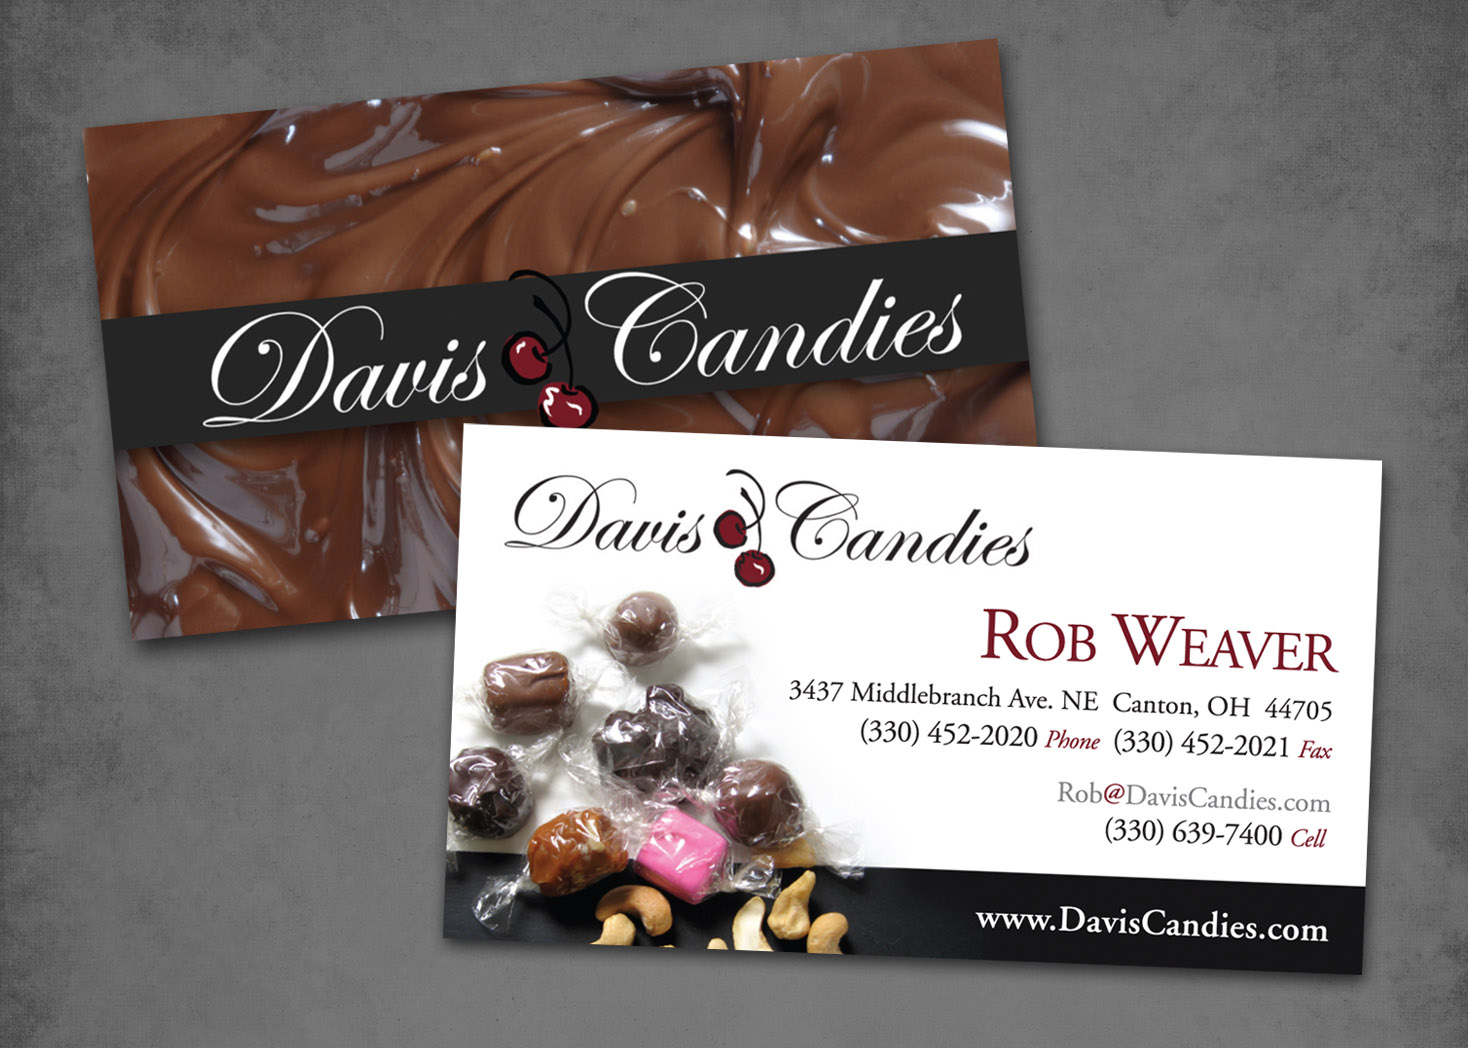 Davis Candies Business Card Design - Lehman Design